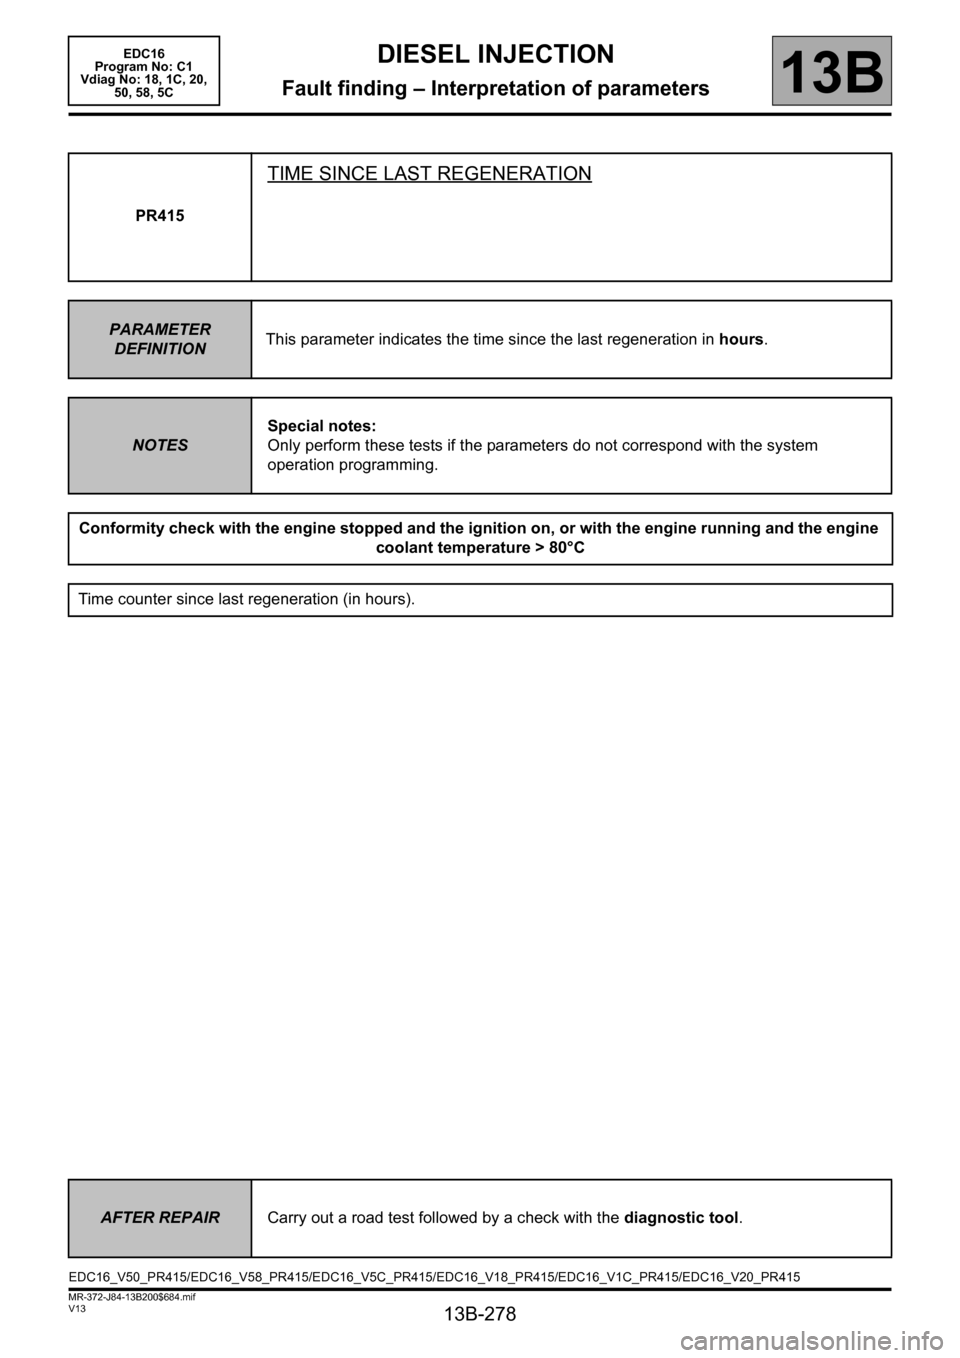 RENAULT SCENIC 2011 J95 / 3.G Engine And Peripherals EDC16 Workshop Manual, Page 278